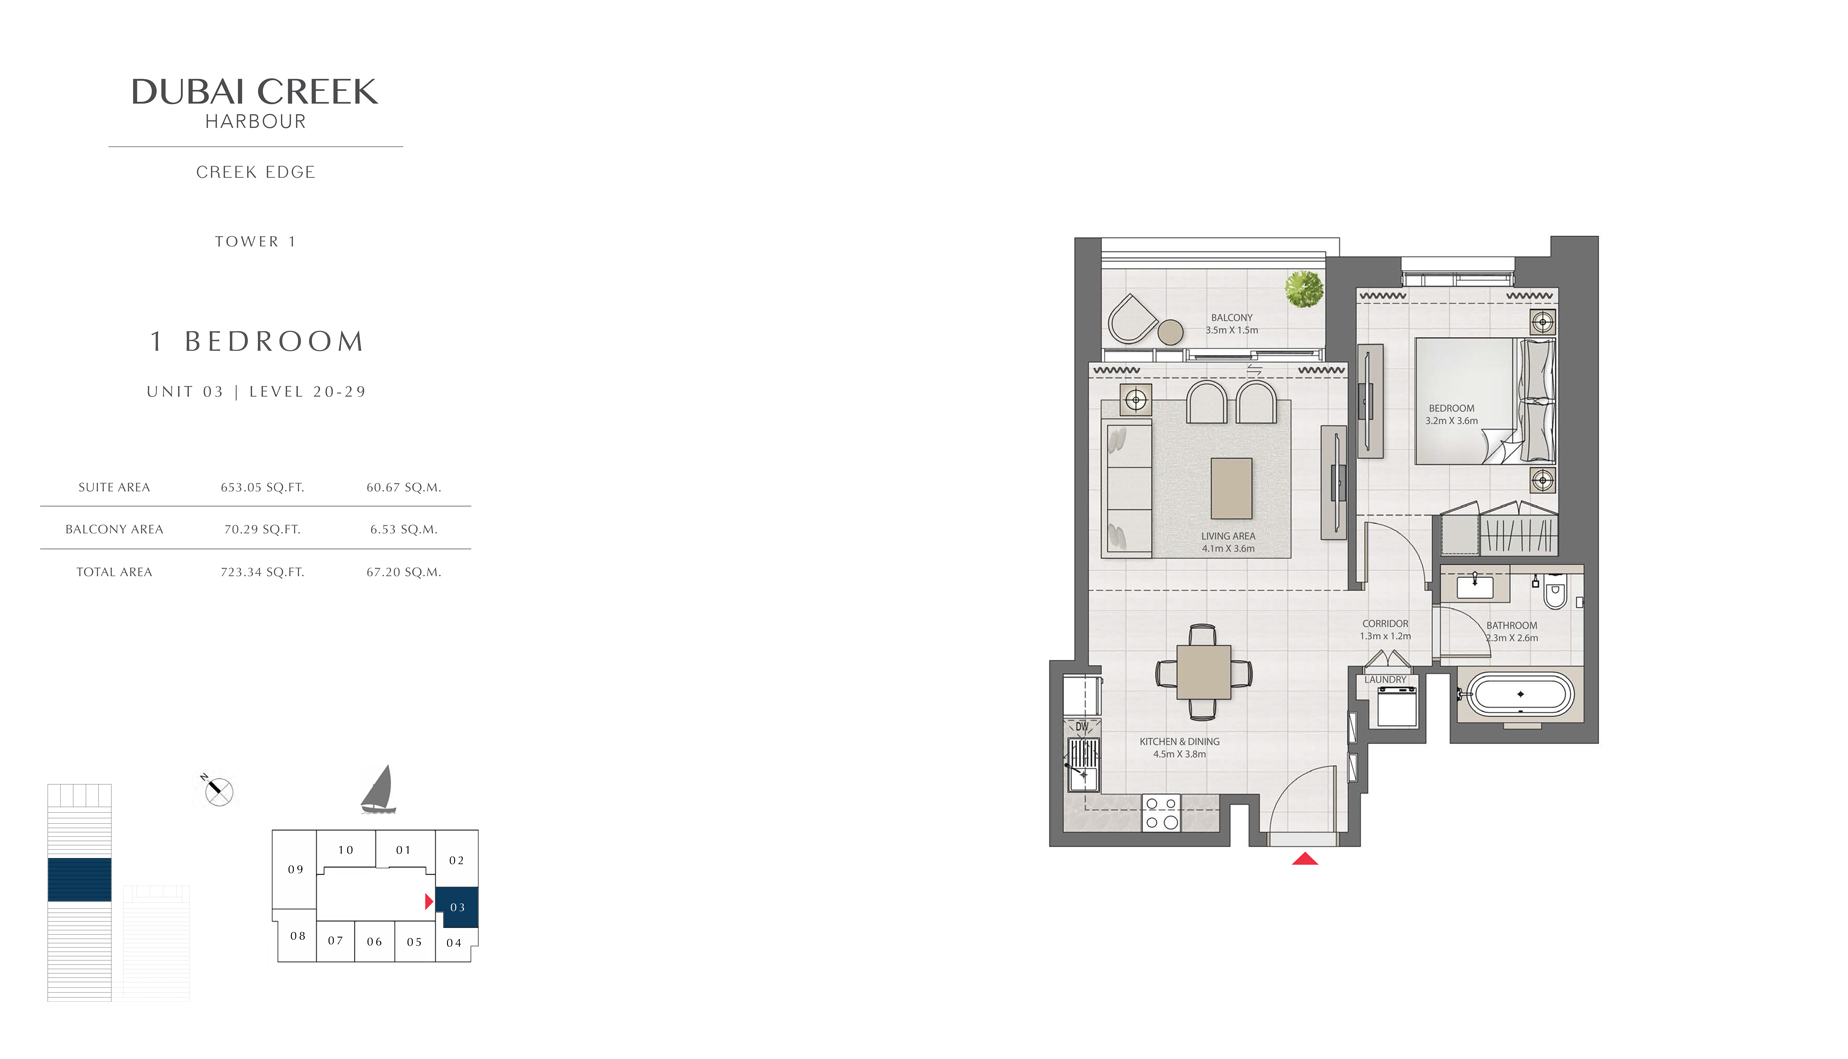 1 Bedroom Tower 1 Unit 03 Level 20-29  Size 723 sq.ft